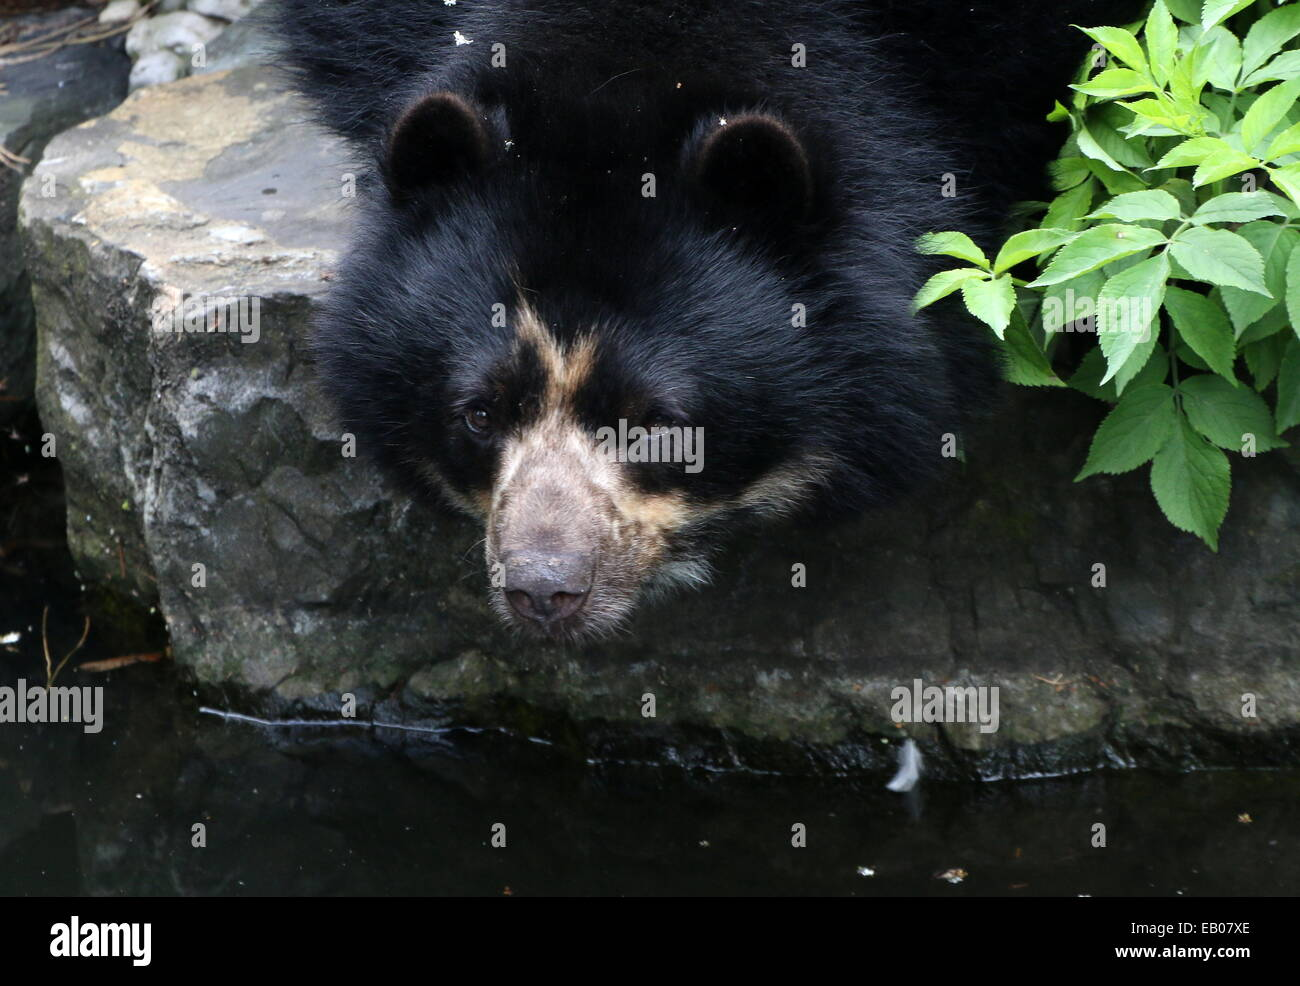 Spectacled or  Andean bear (Tremarctos ornatus) close-up while drinking water, making eye-contact Stock Photo